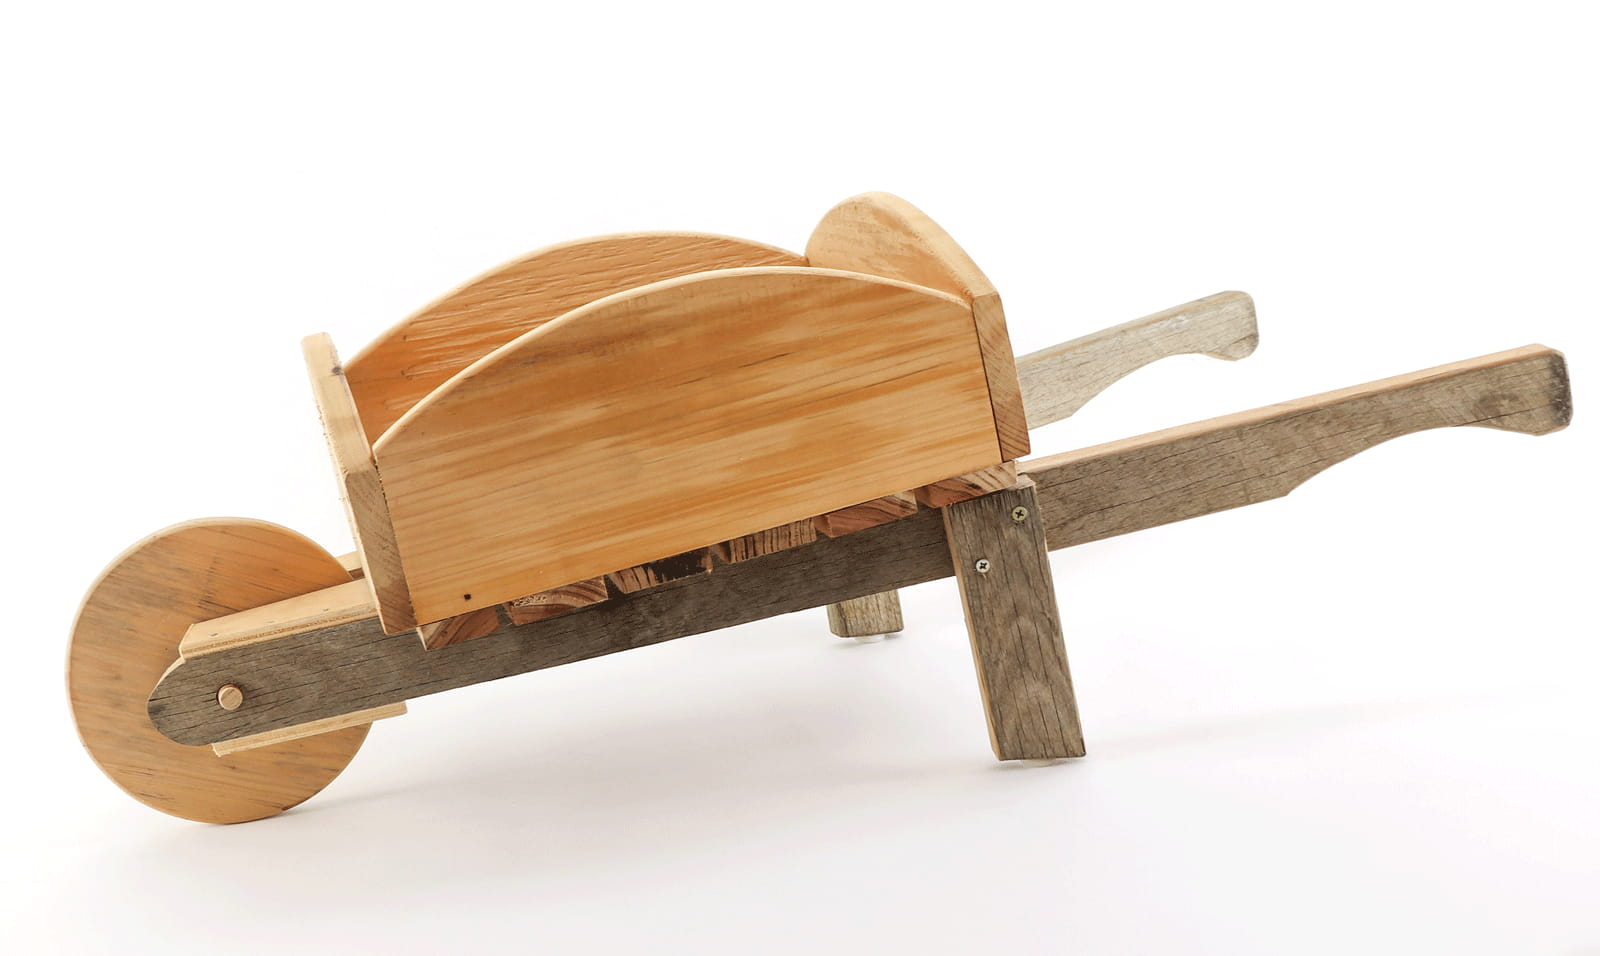 Wooden Toy 89cm long